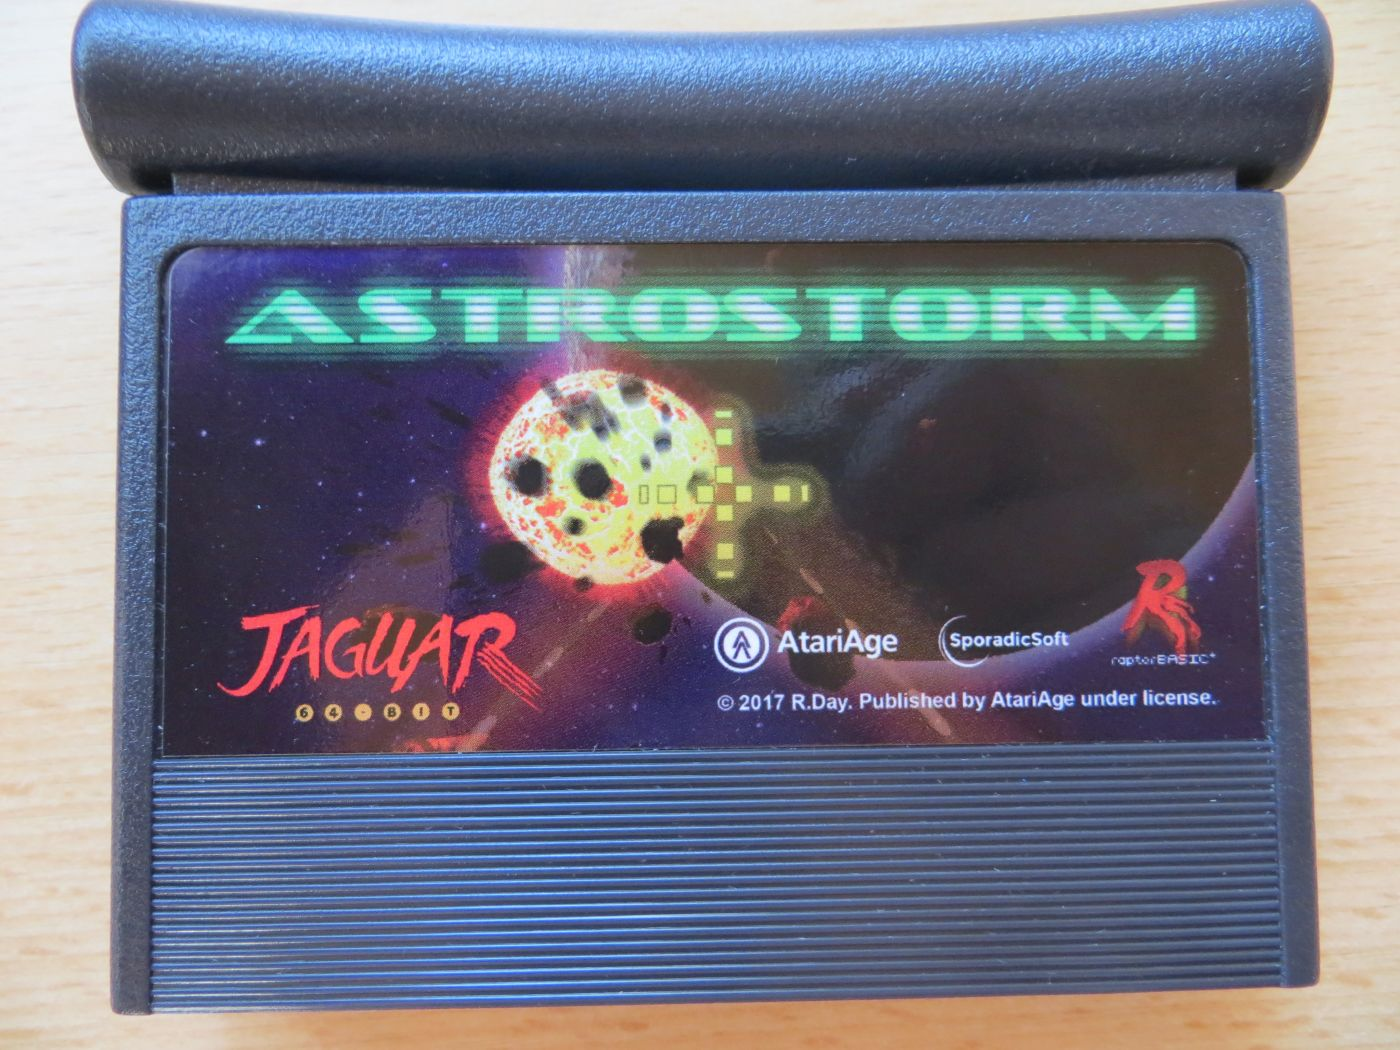 Astrostorm - Cartridge